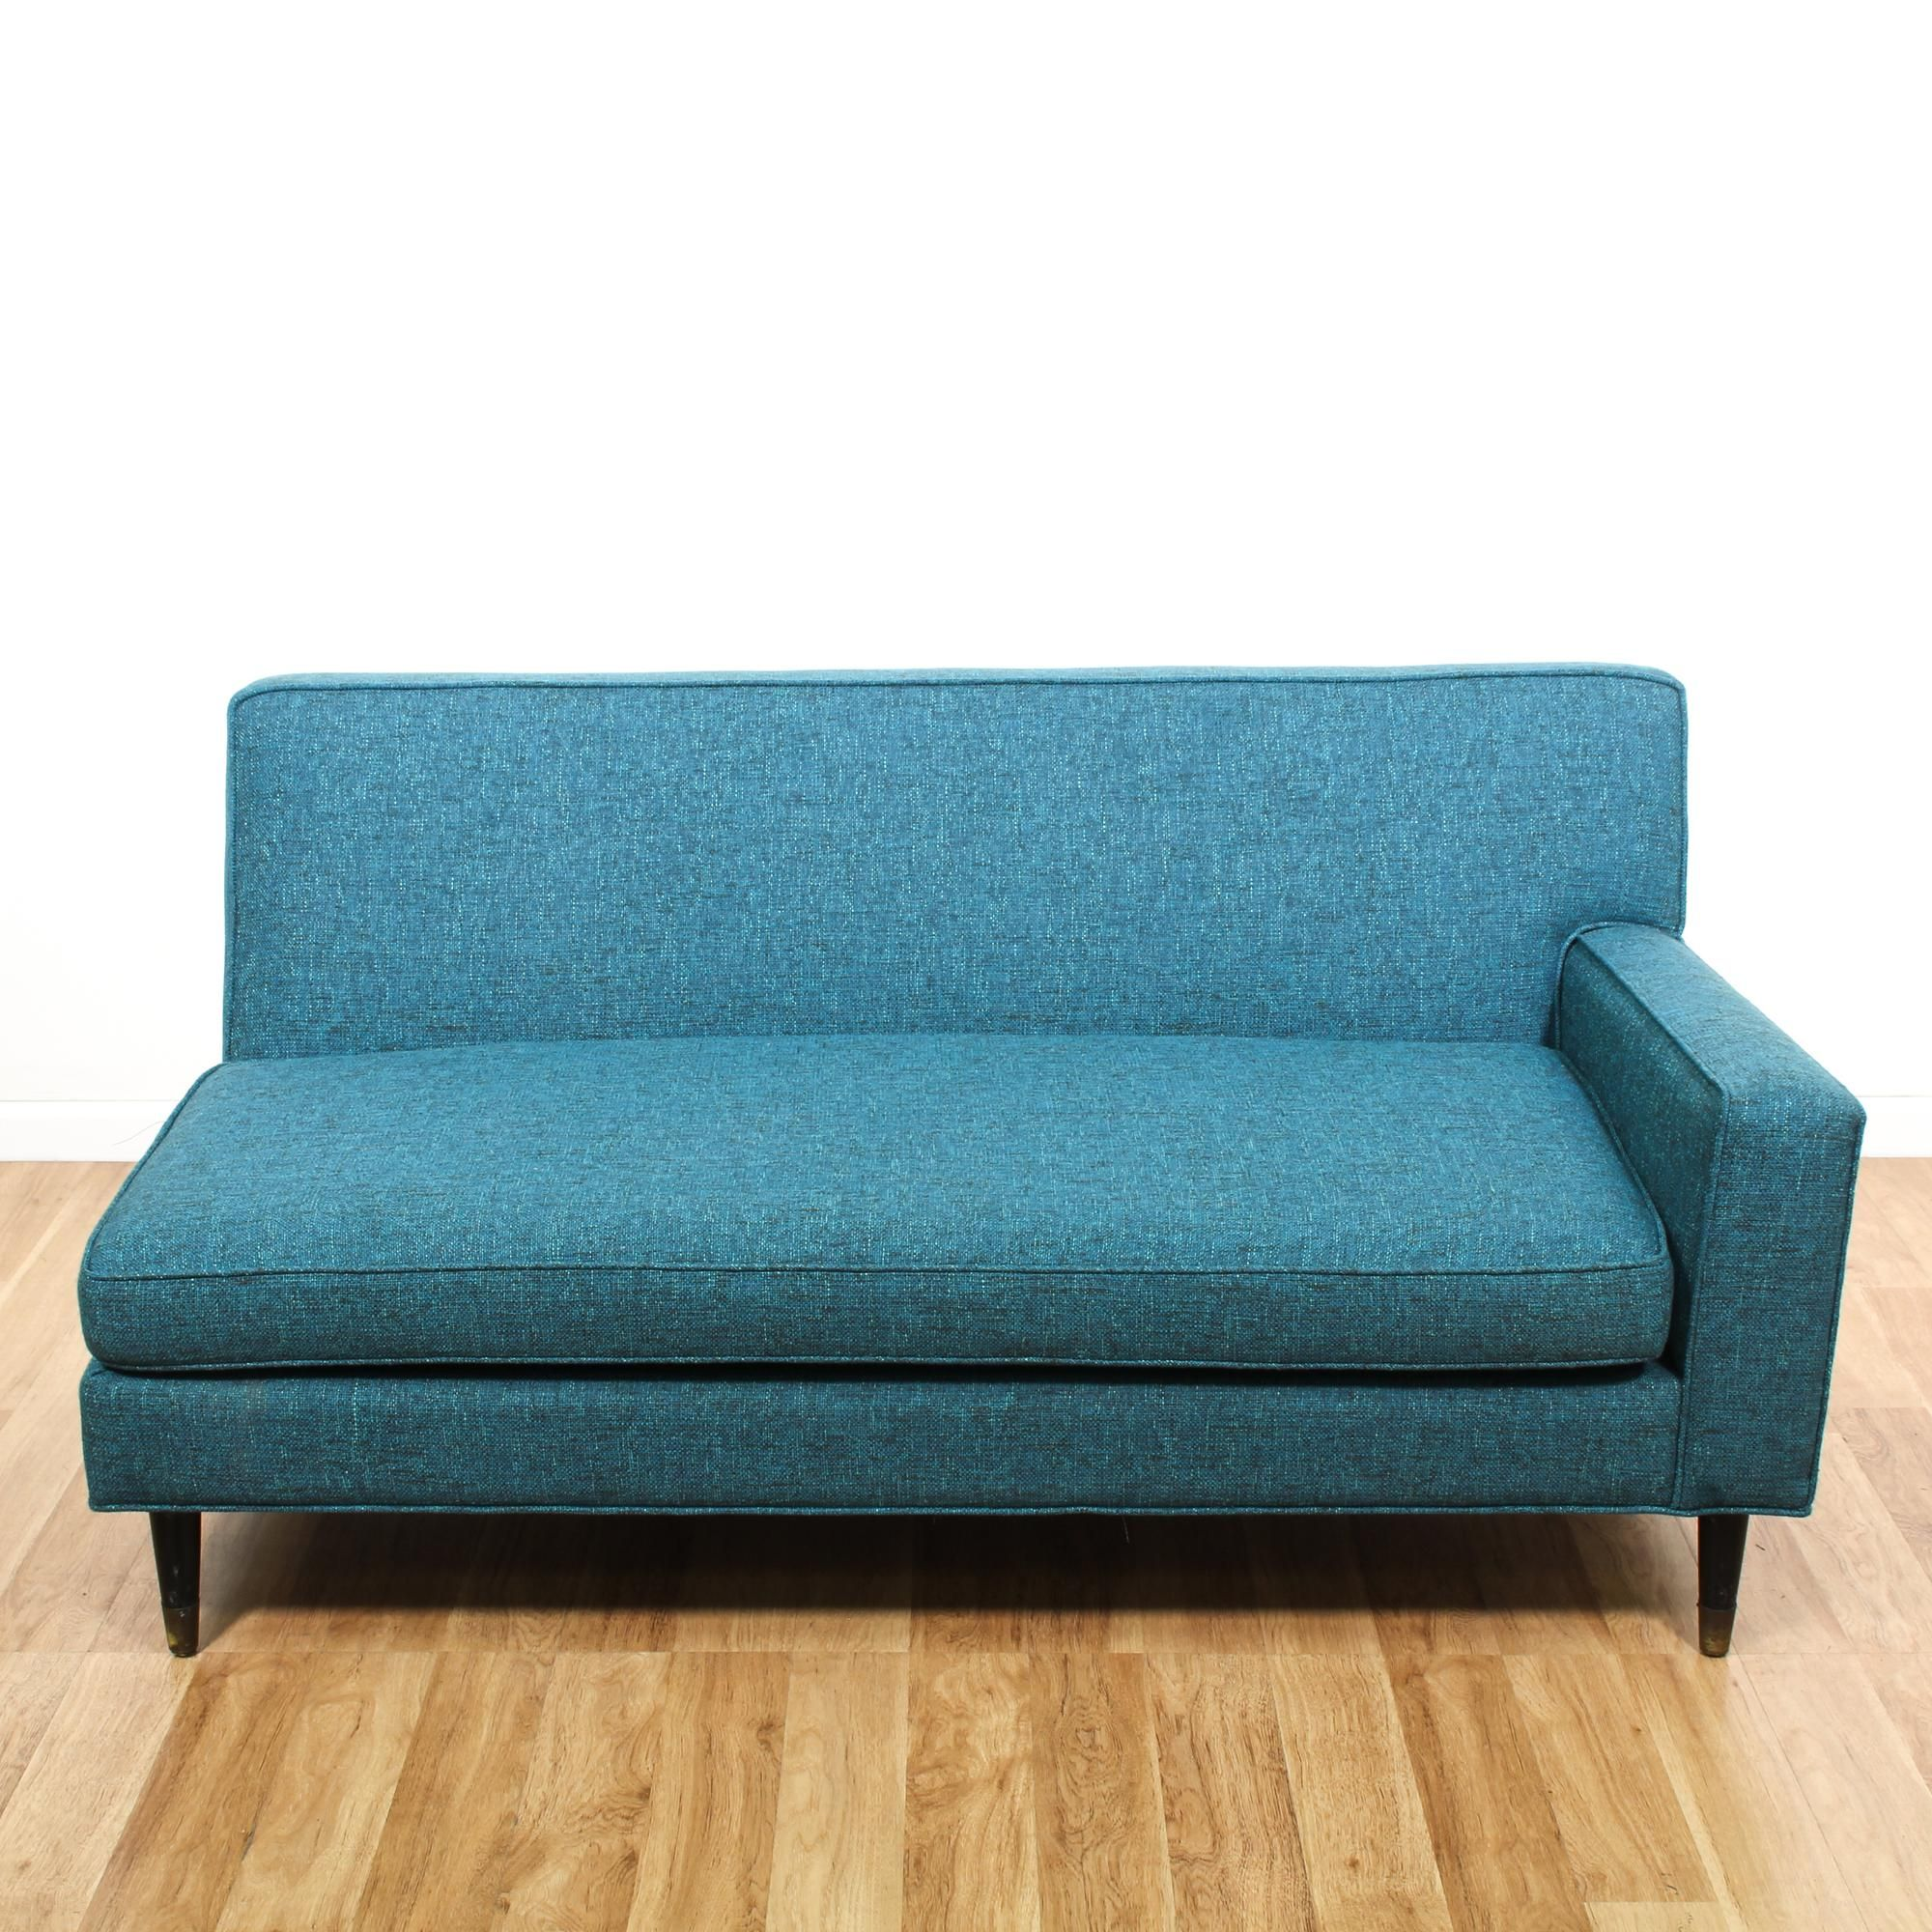 Superb Newly Reupholstered Blue Mid Century Modern Sofa 2 | Loveseat Vintage Furniture  San Diego U0026 Los